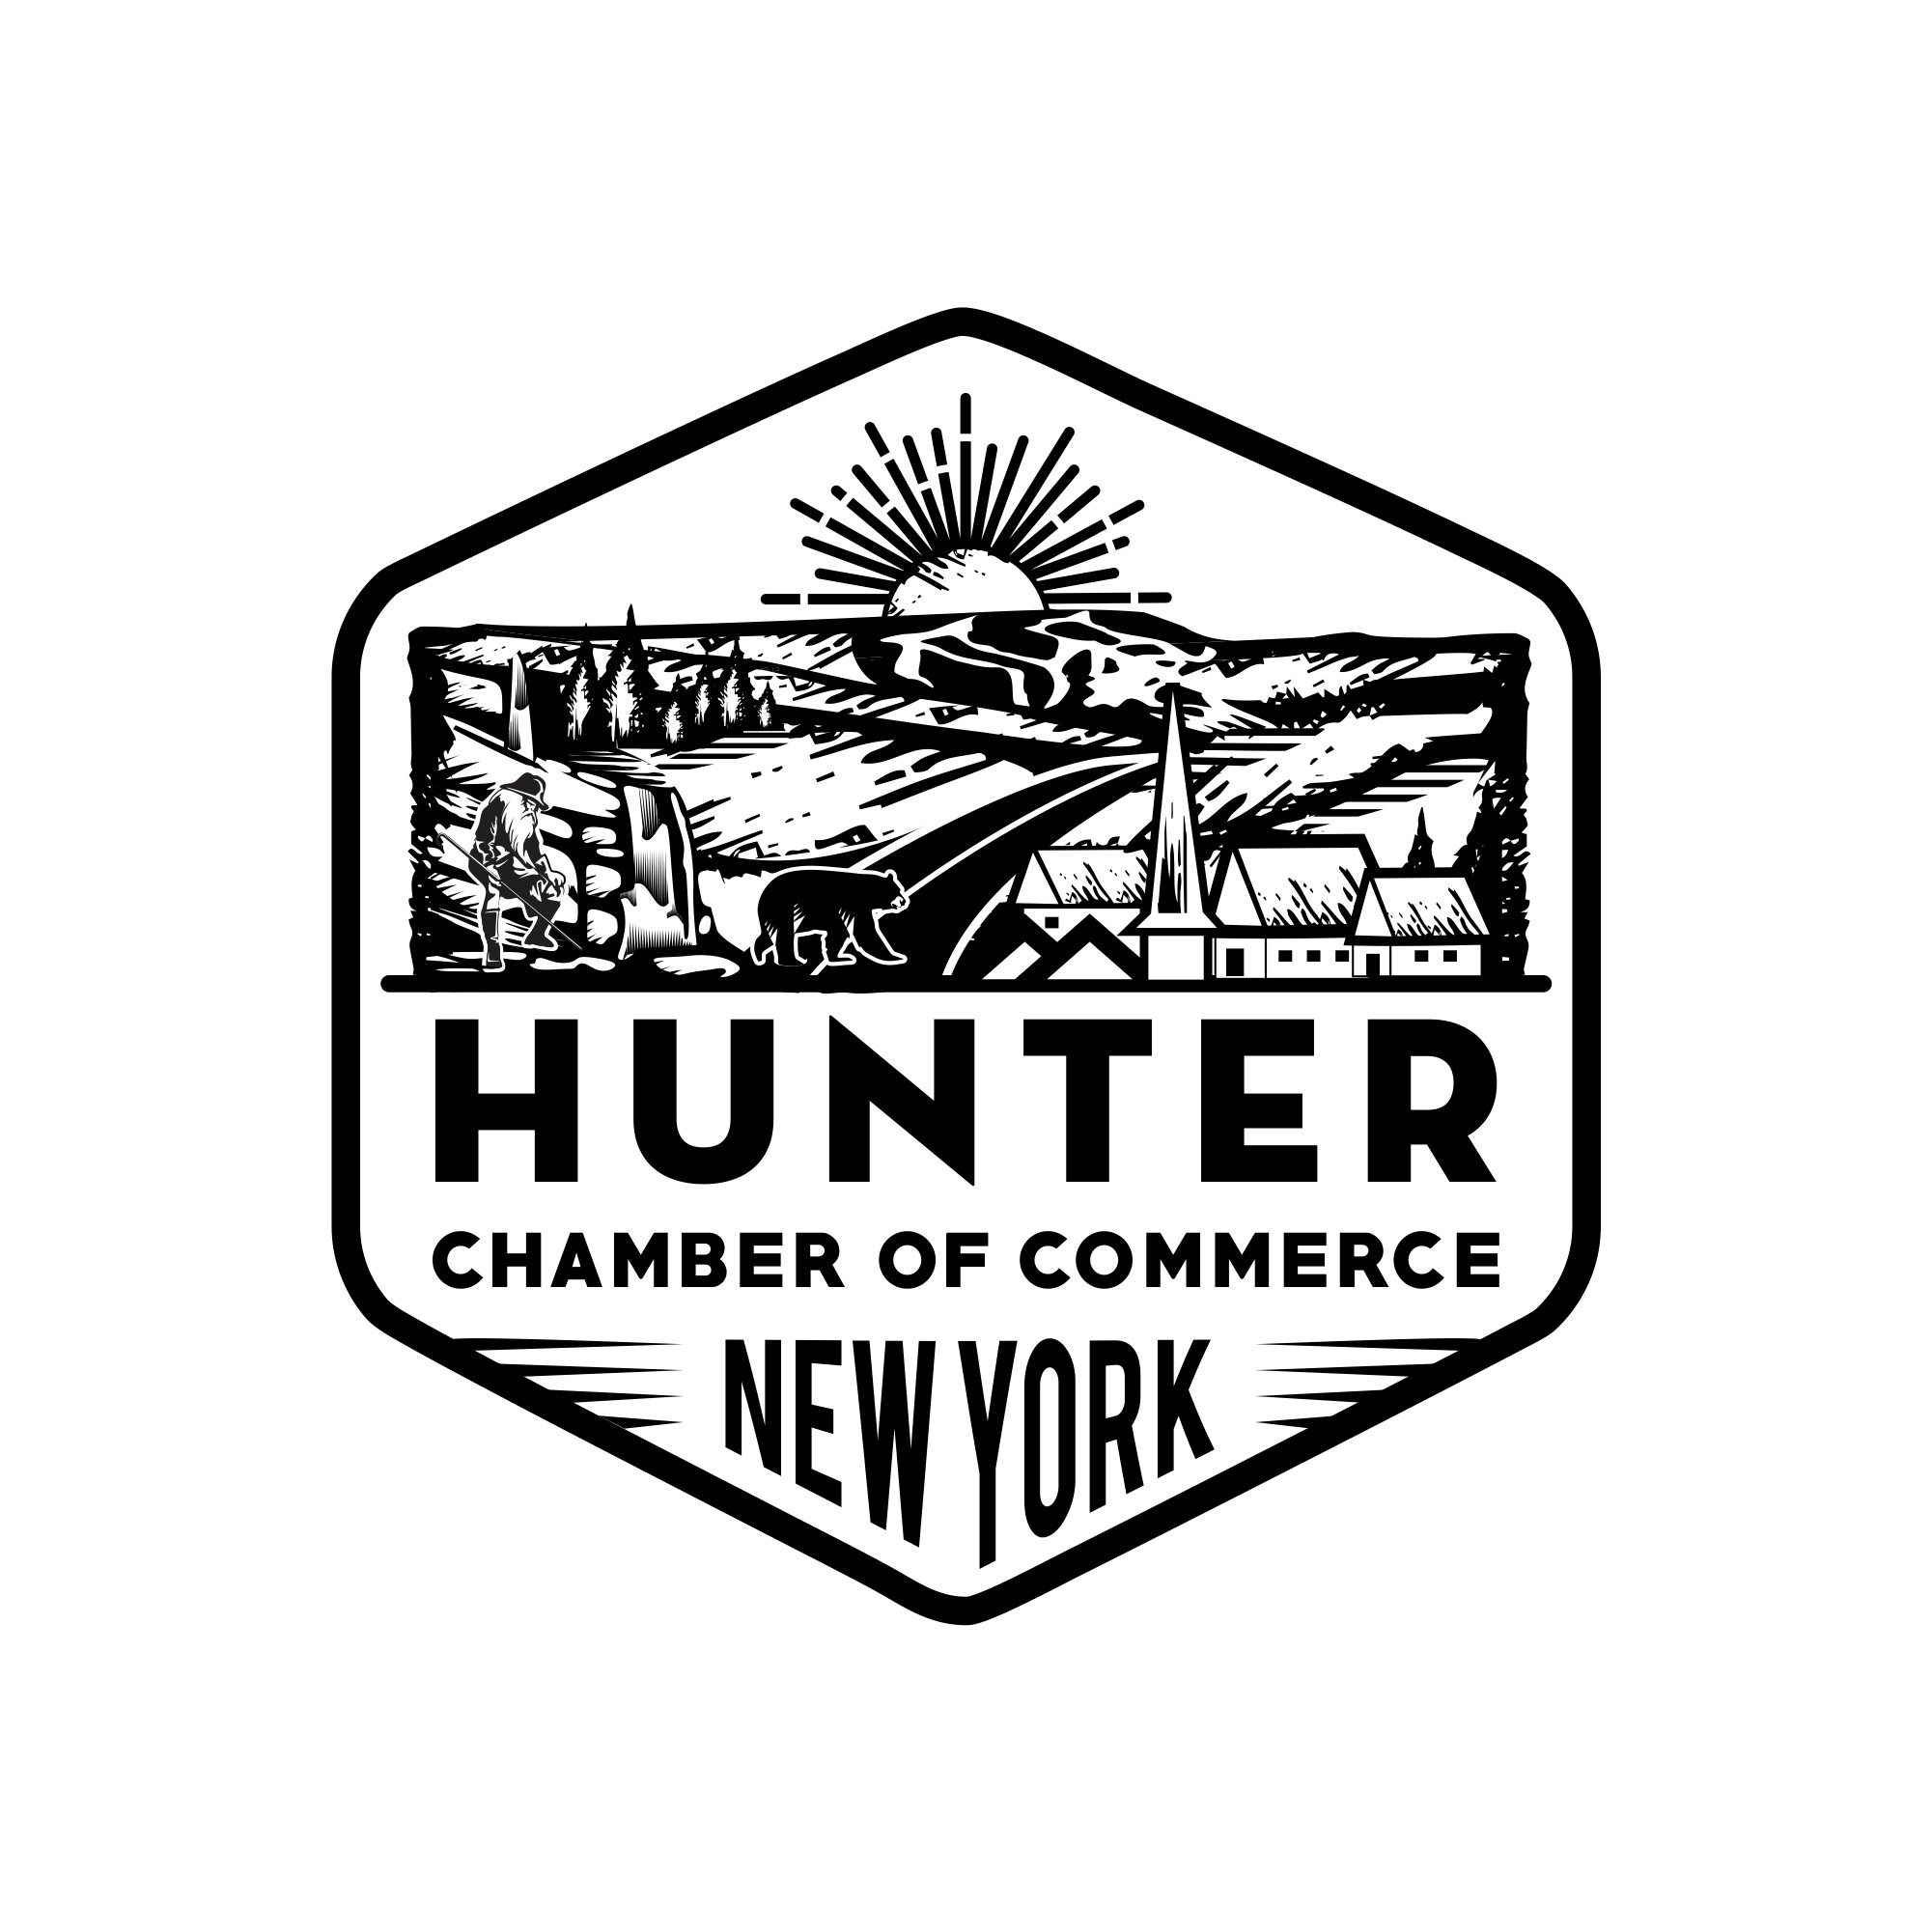 Hunter & Hunter Chamber of Commerce